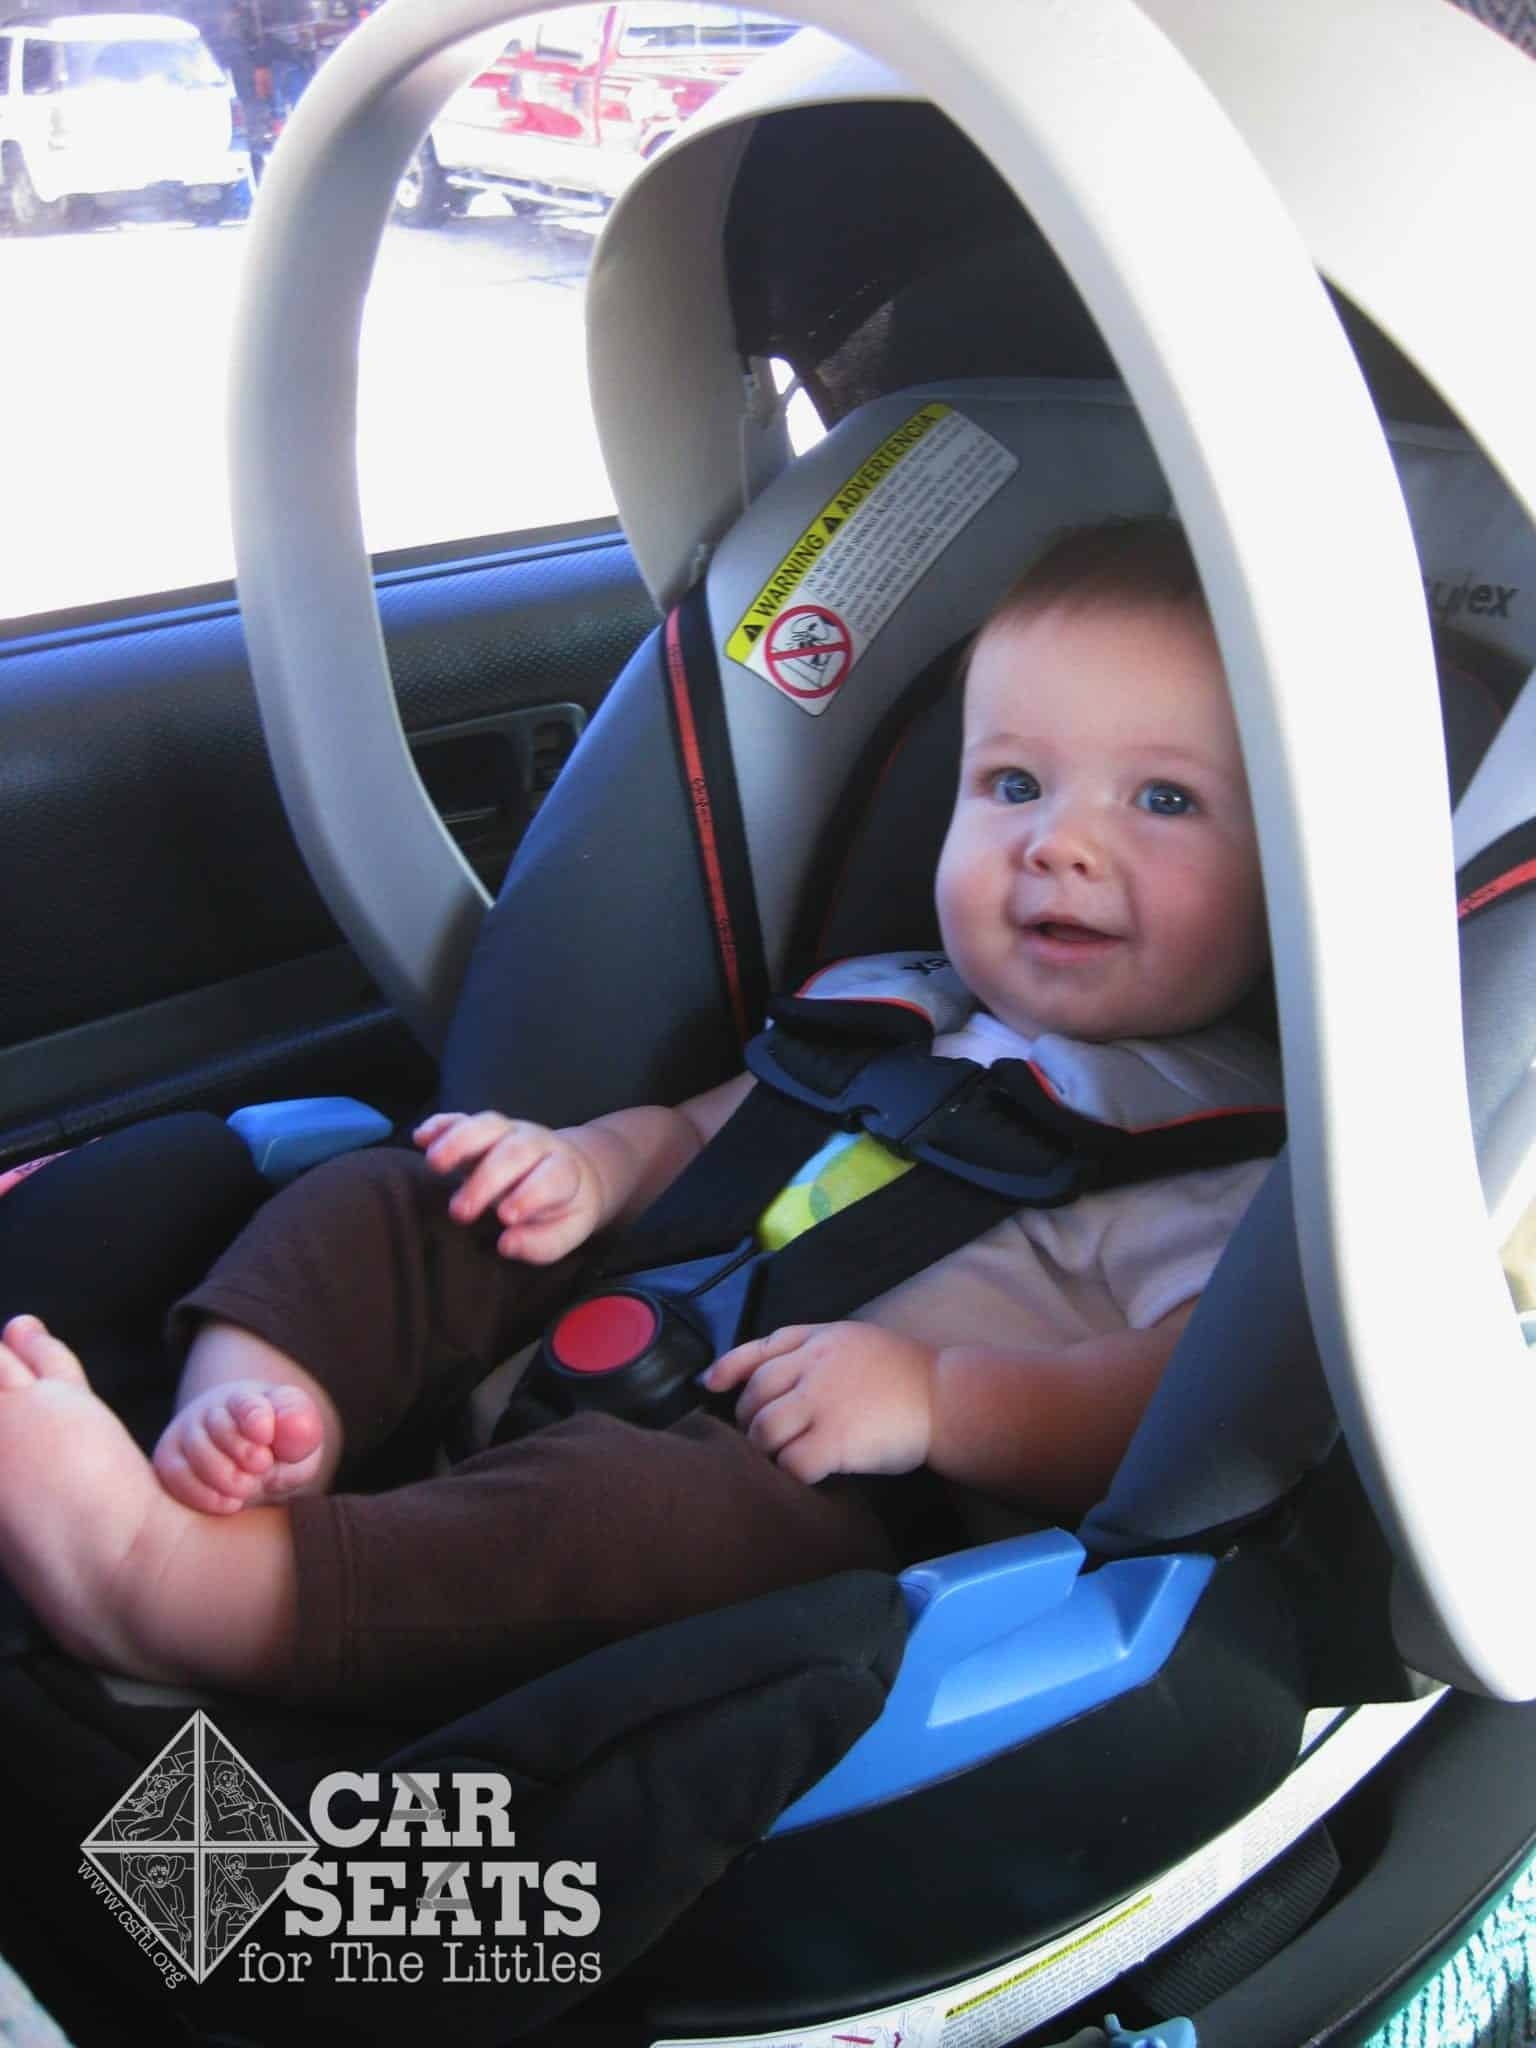 car seats for the littles cybex aton reviewcybex aton review car seats for the littles. Black Bedroom Furniture Sets. Home Design Ideas